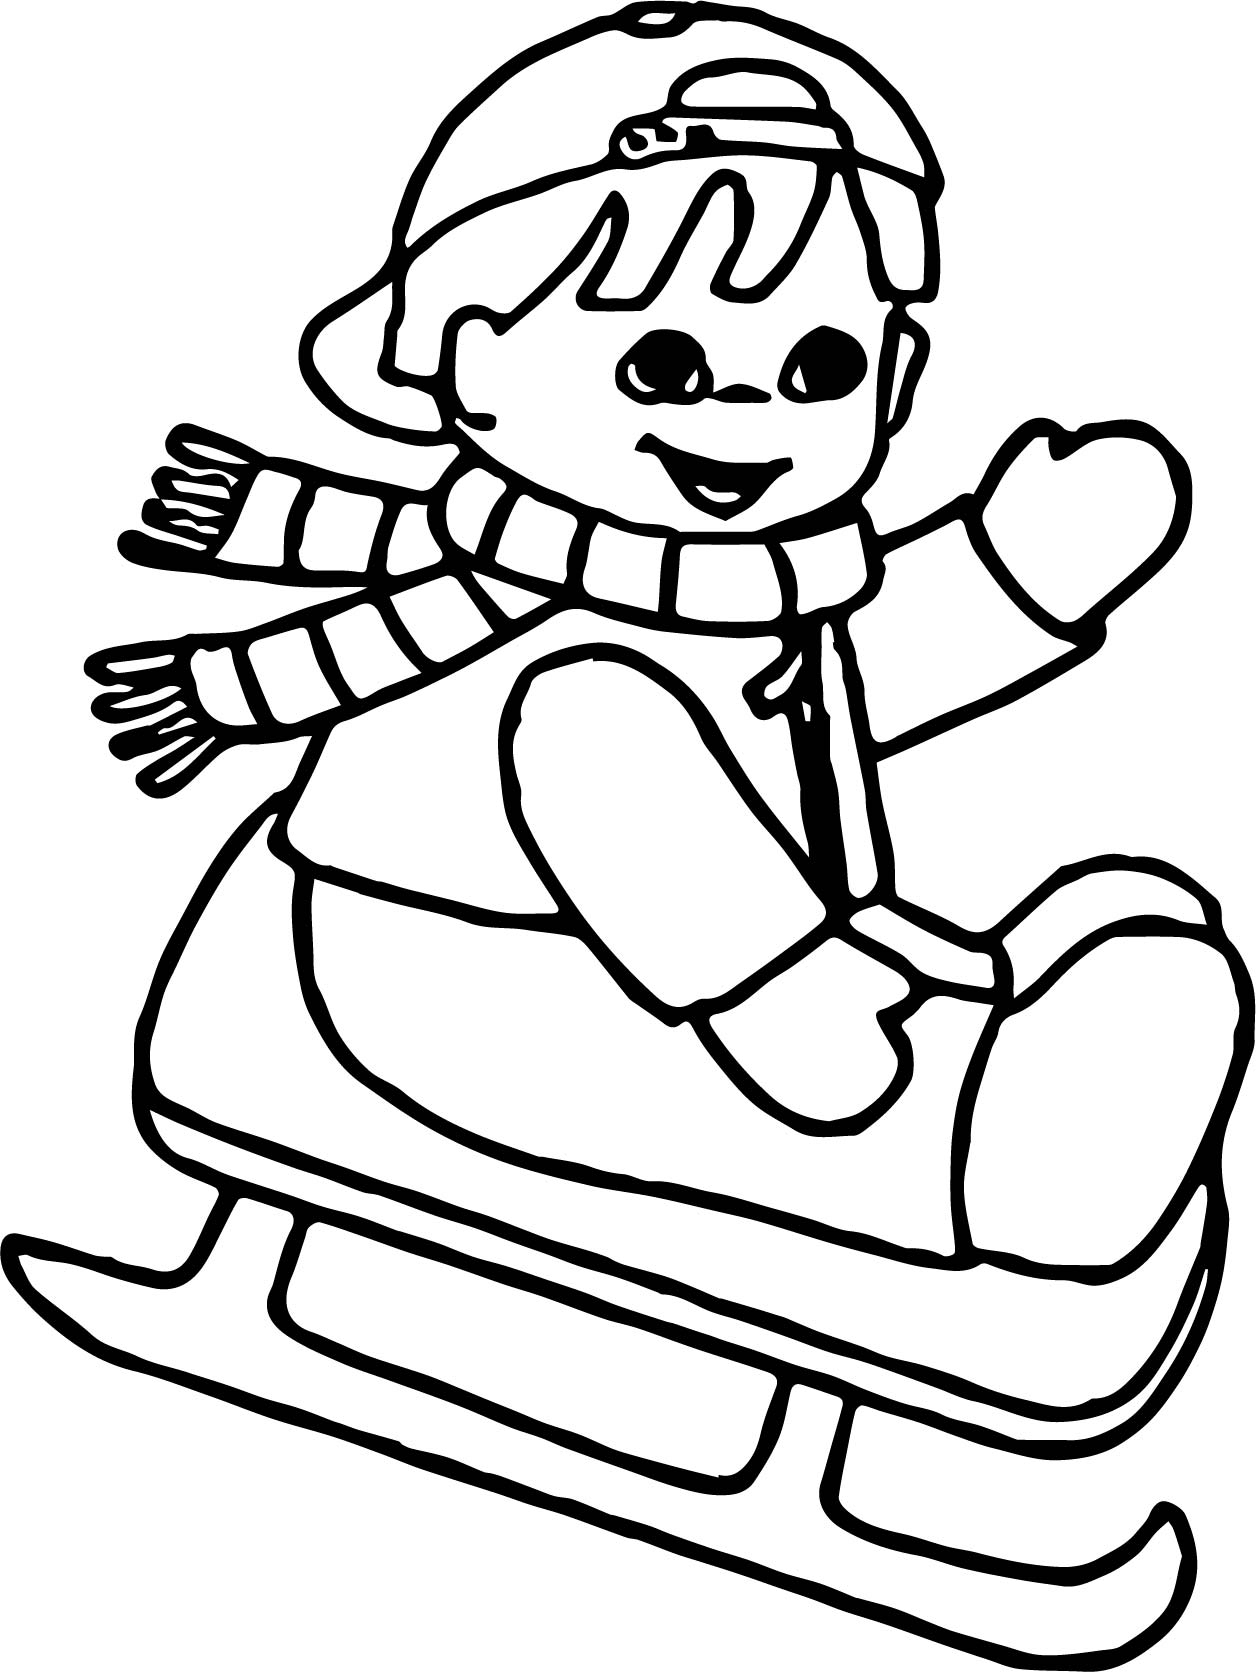 winter child slide coloring page wecoloringpage